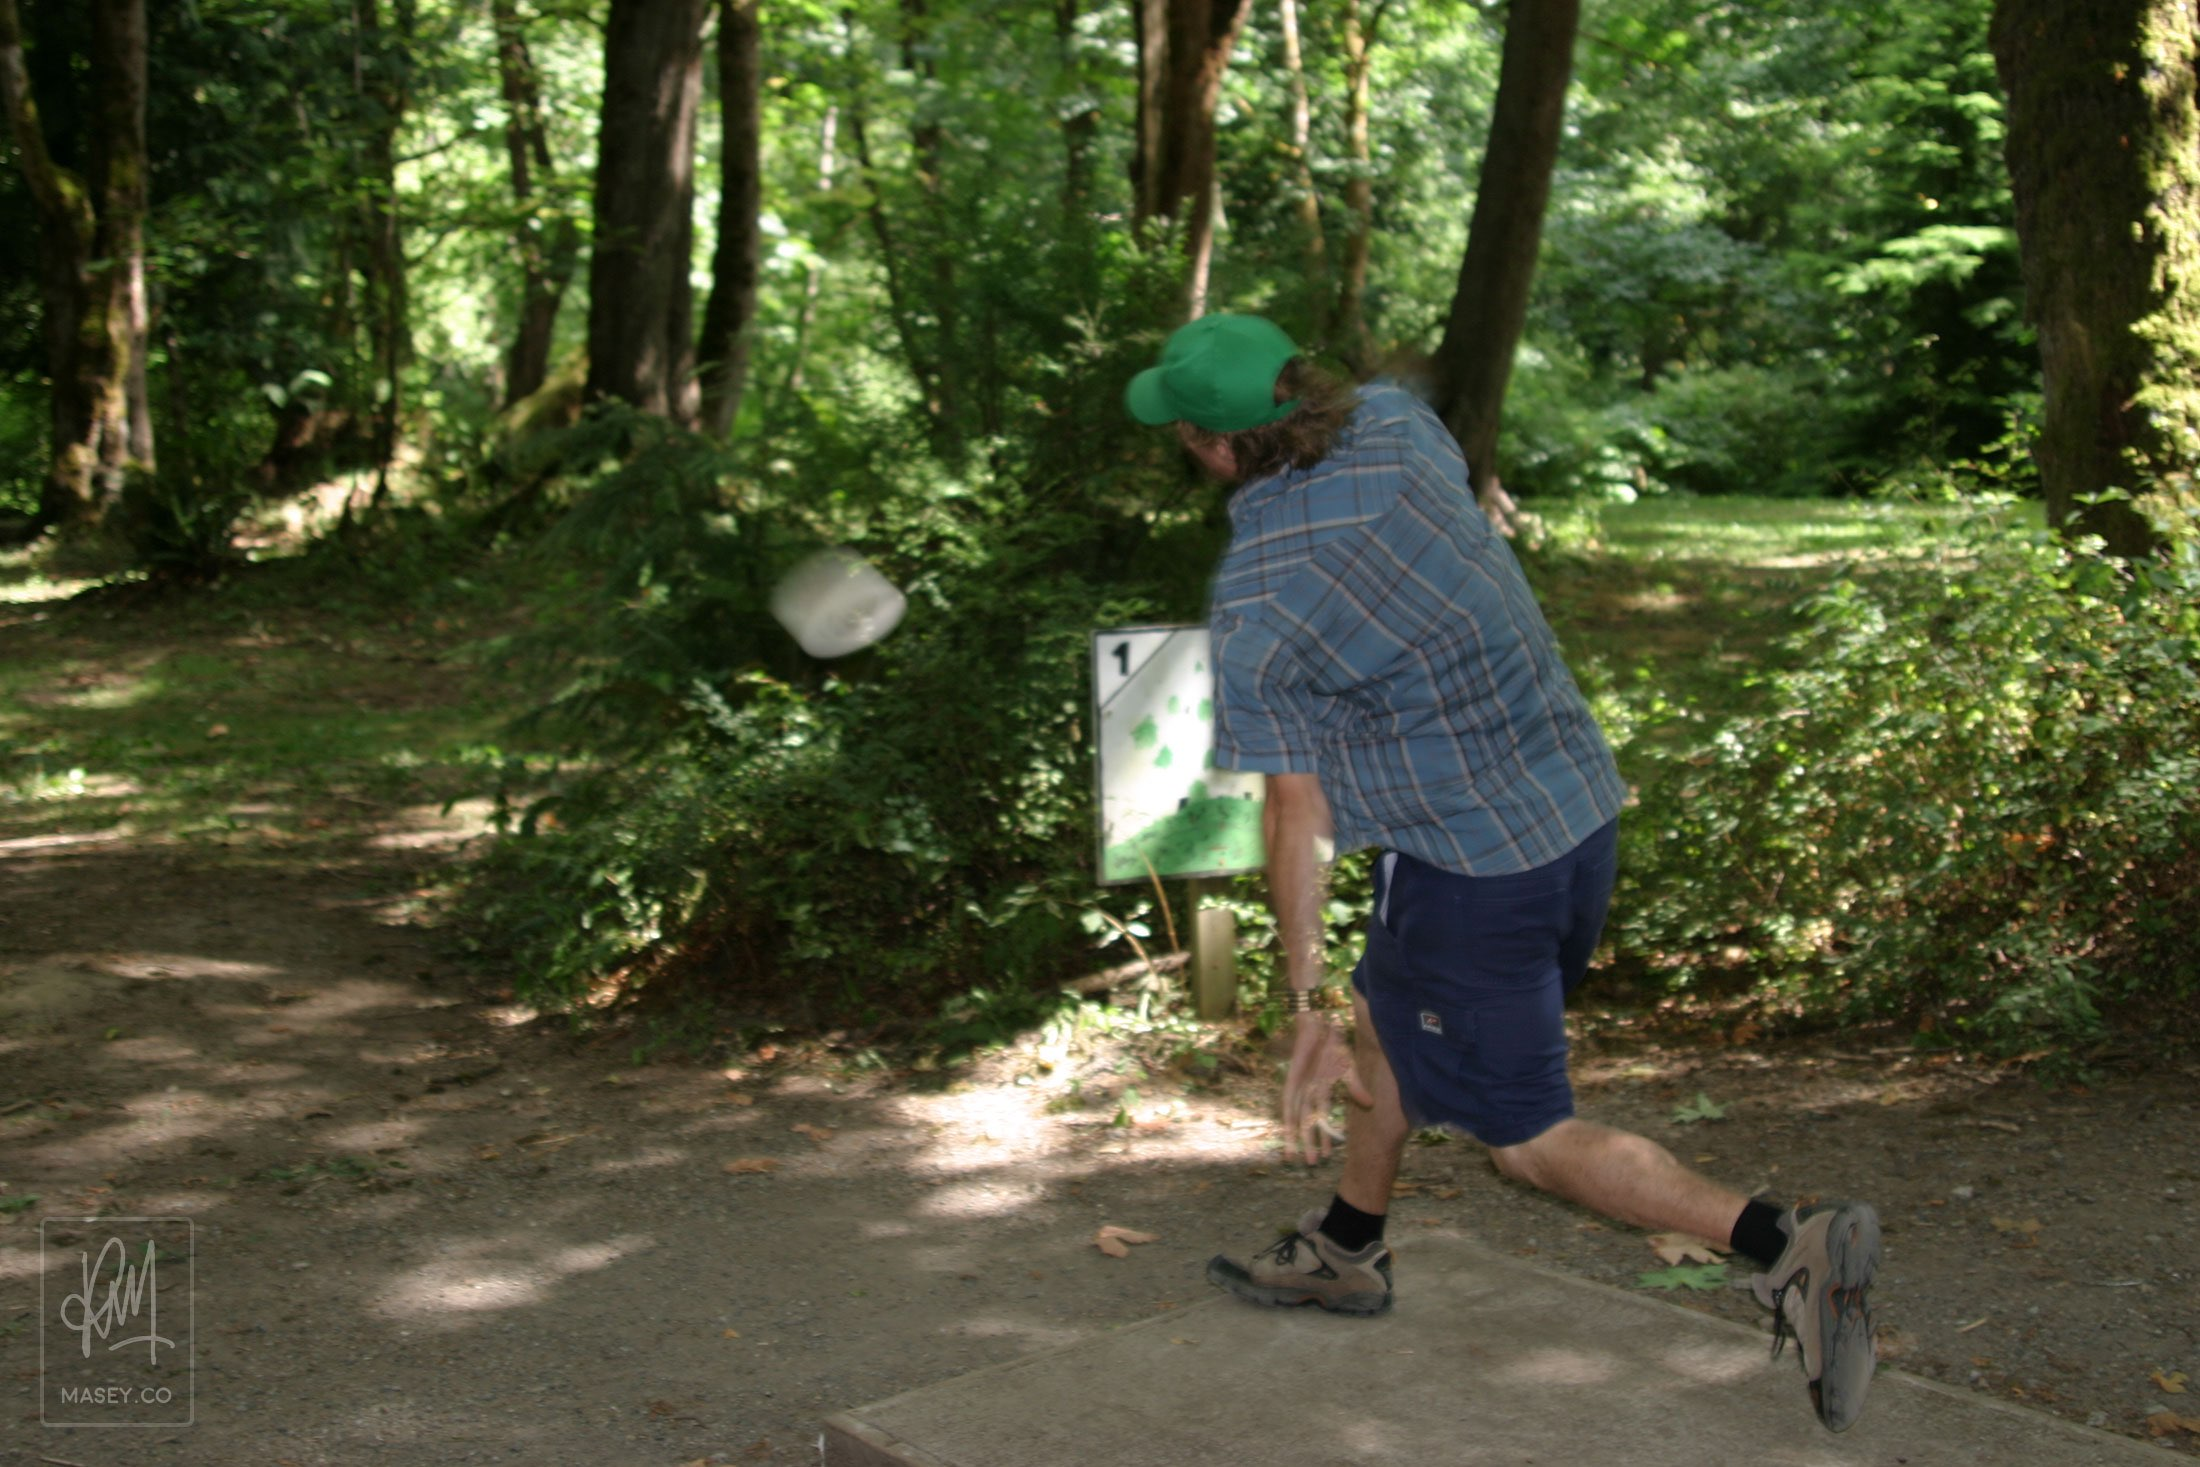 More frisbee golf because... why not?